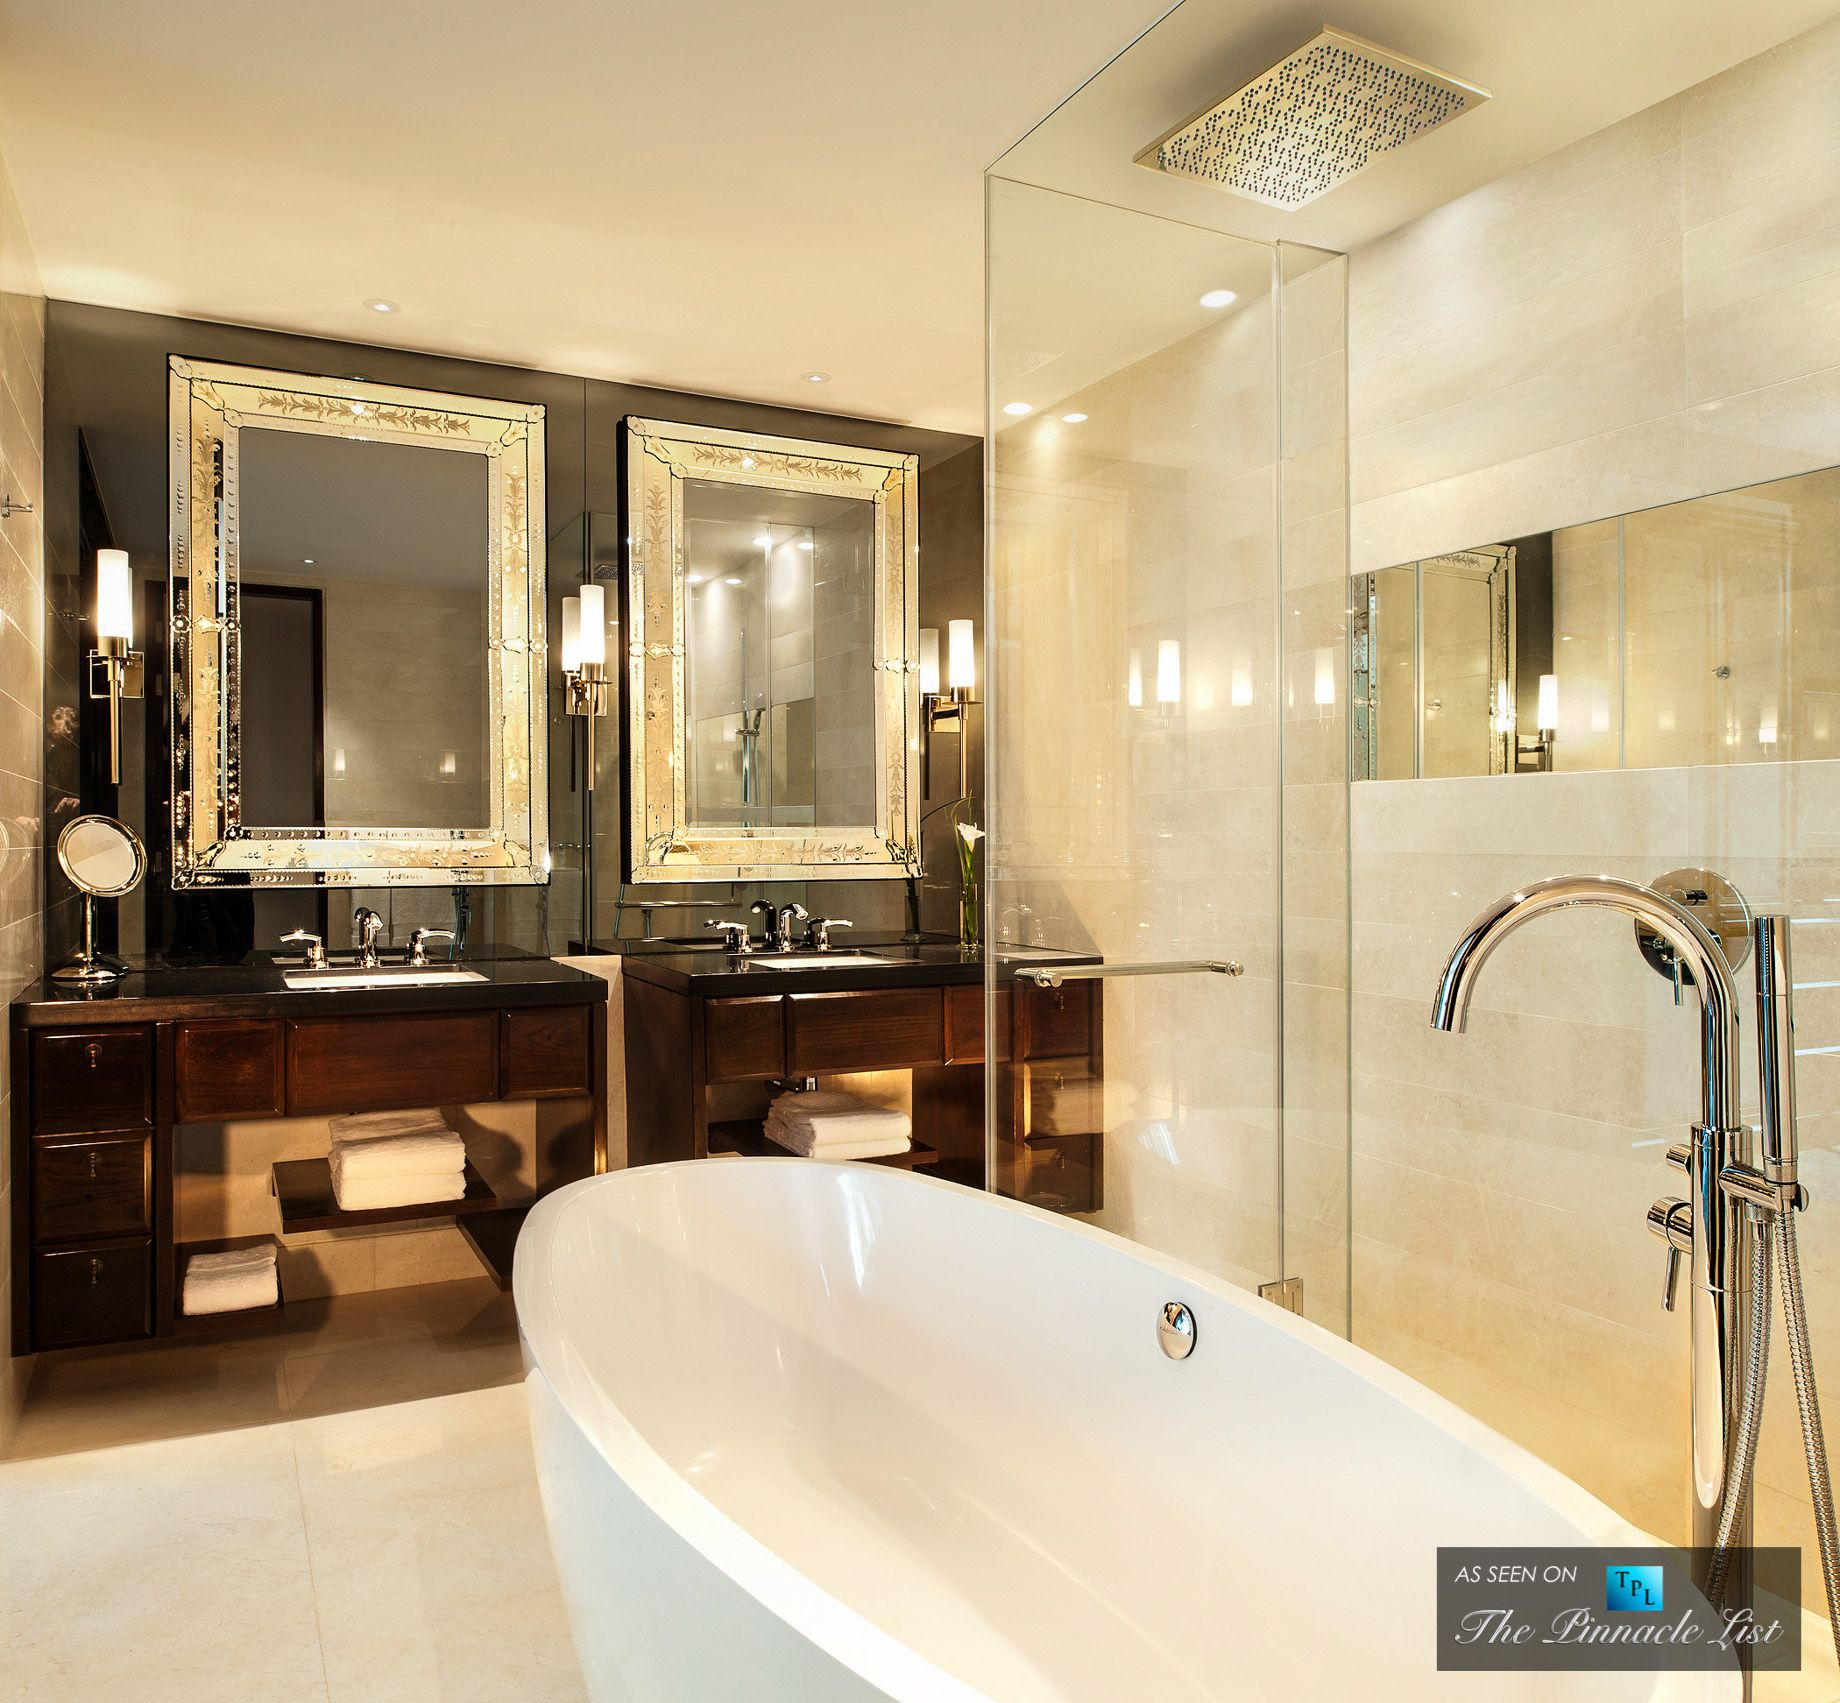 Luxury Hotel Bathroom Home Modern Bathroom St Regis Luxury Hotel Bangkok Thailand